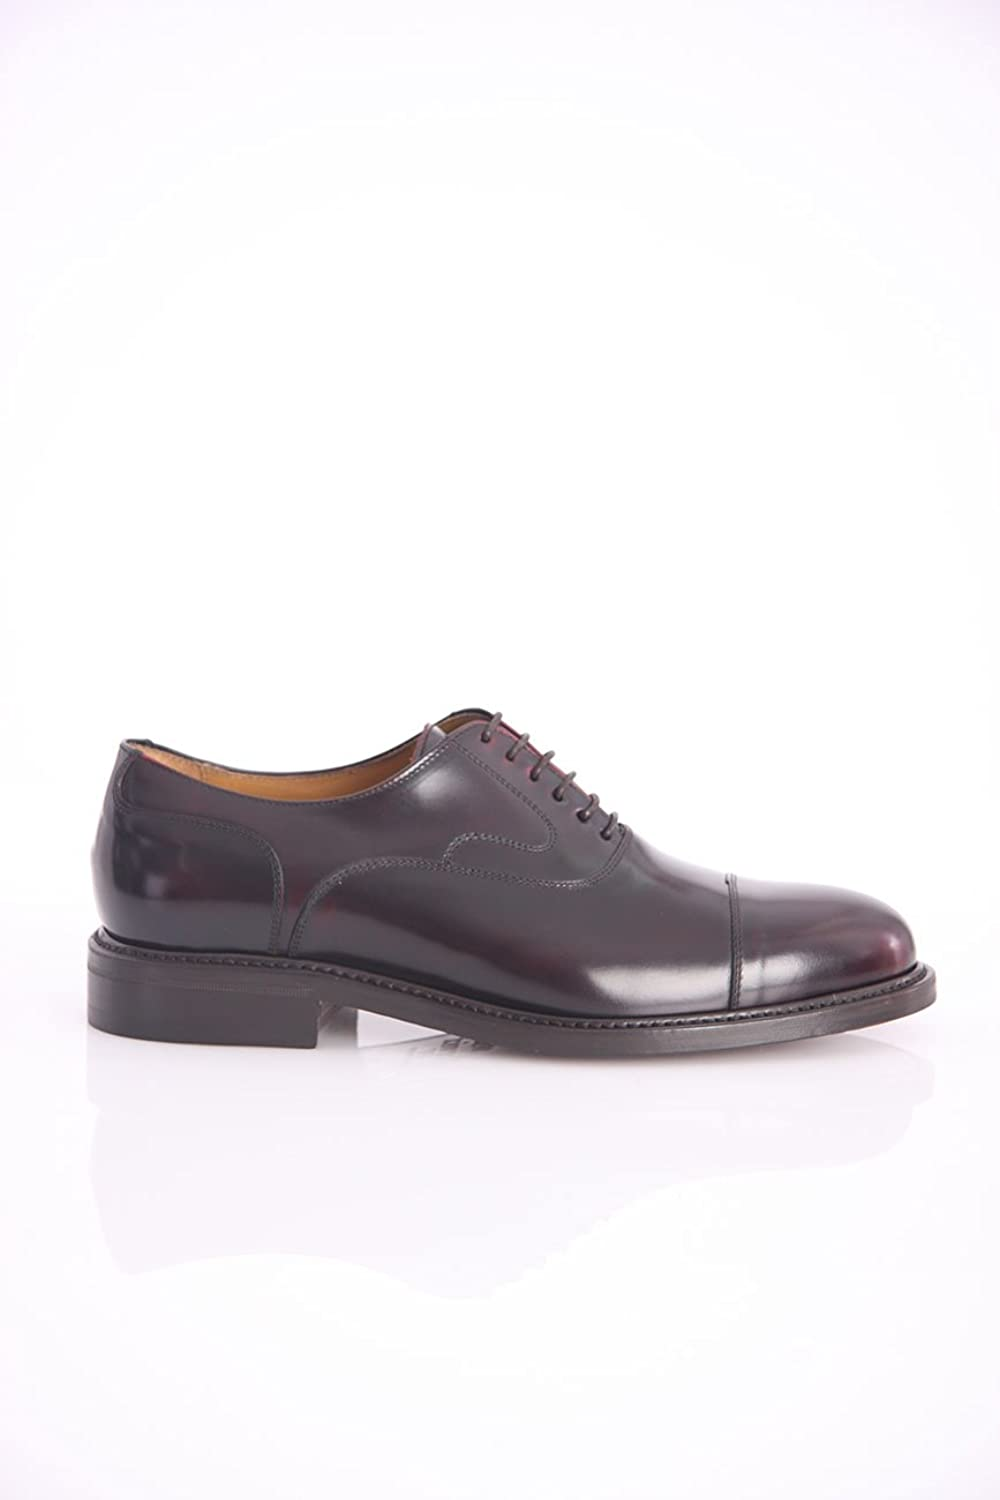 Schuhe IN braun Leather, Herren.